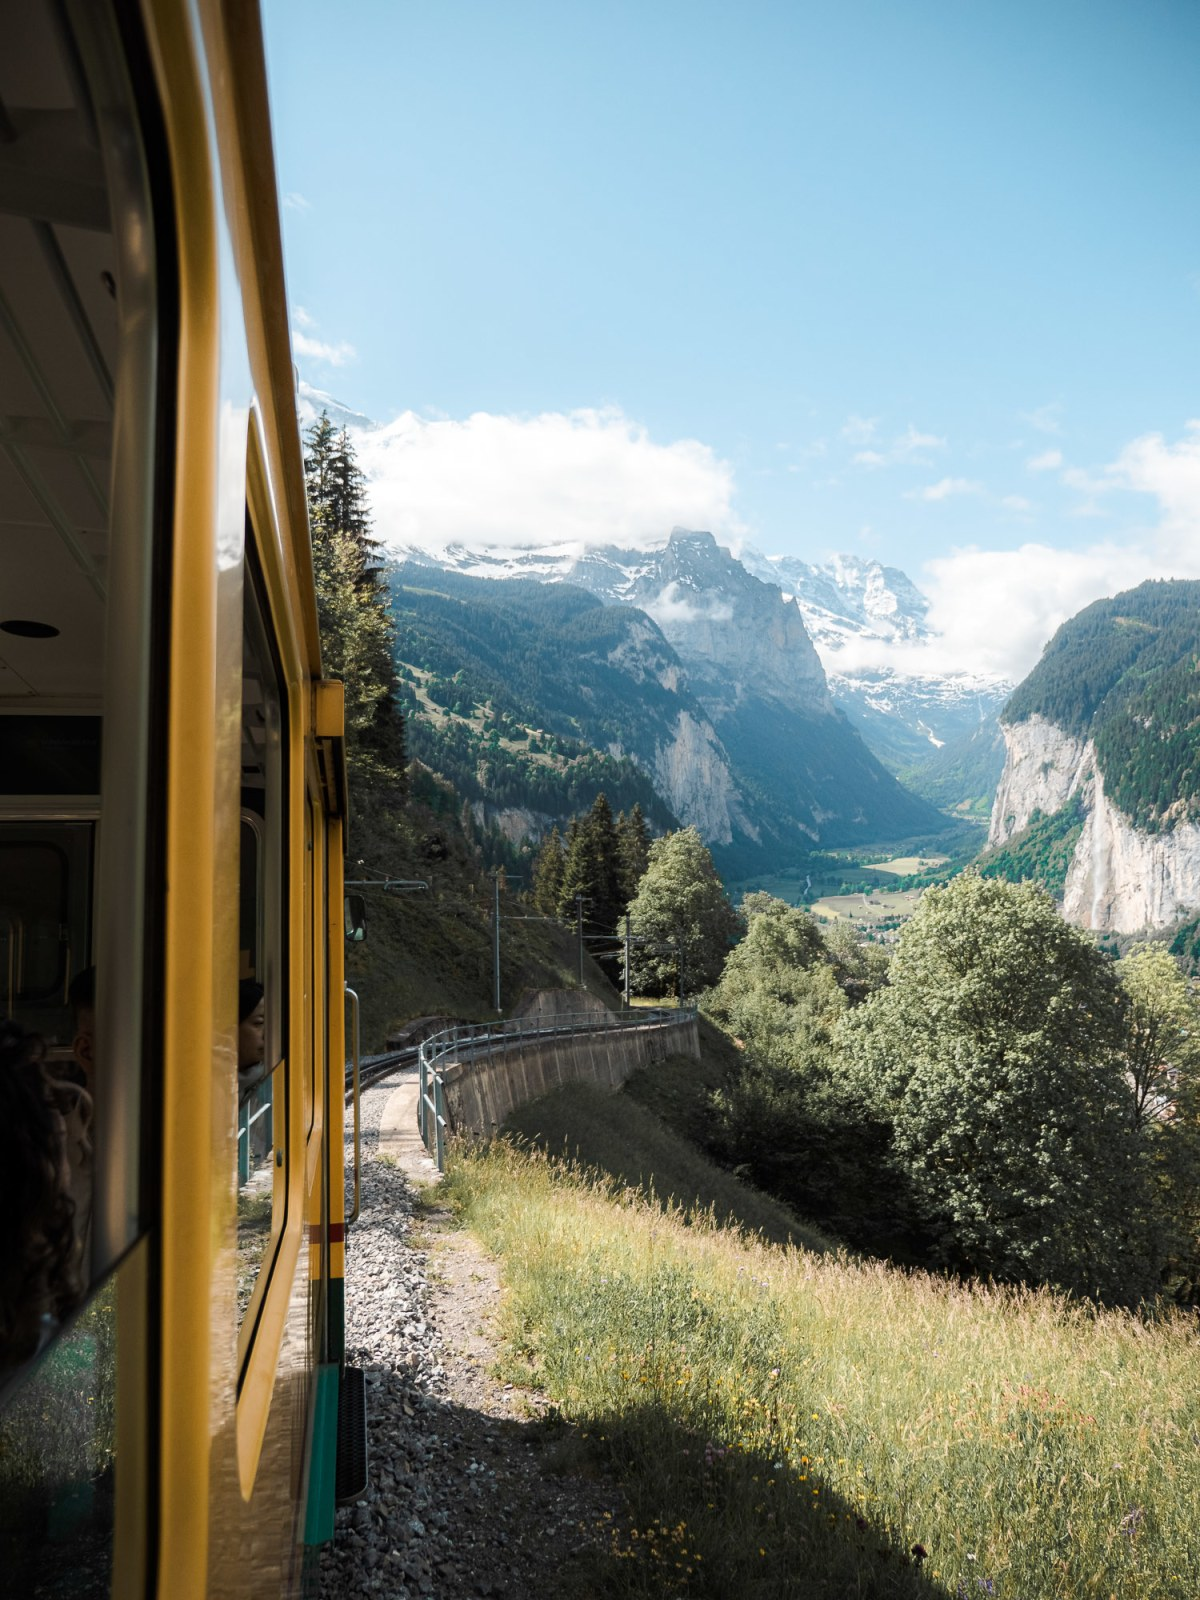 views from the train ride up to wengen